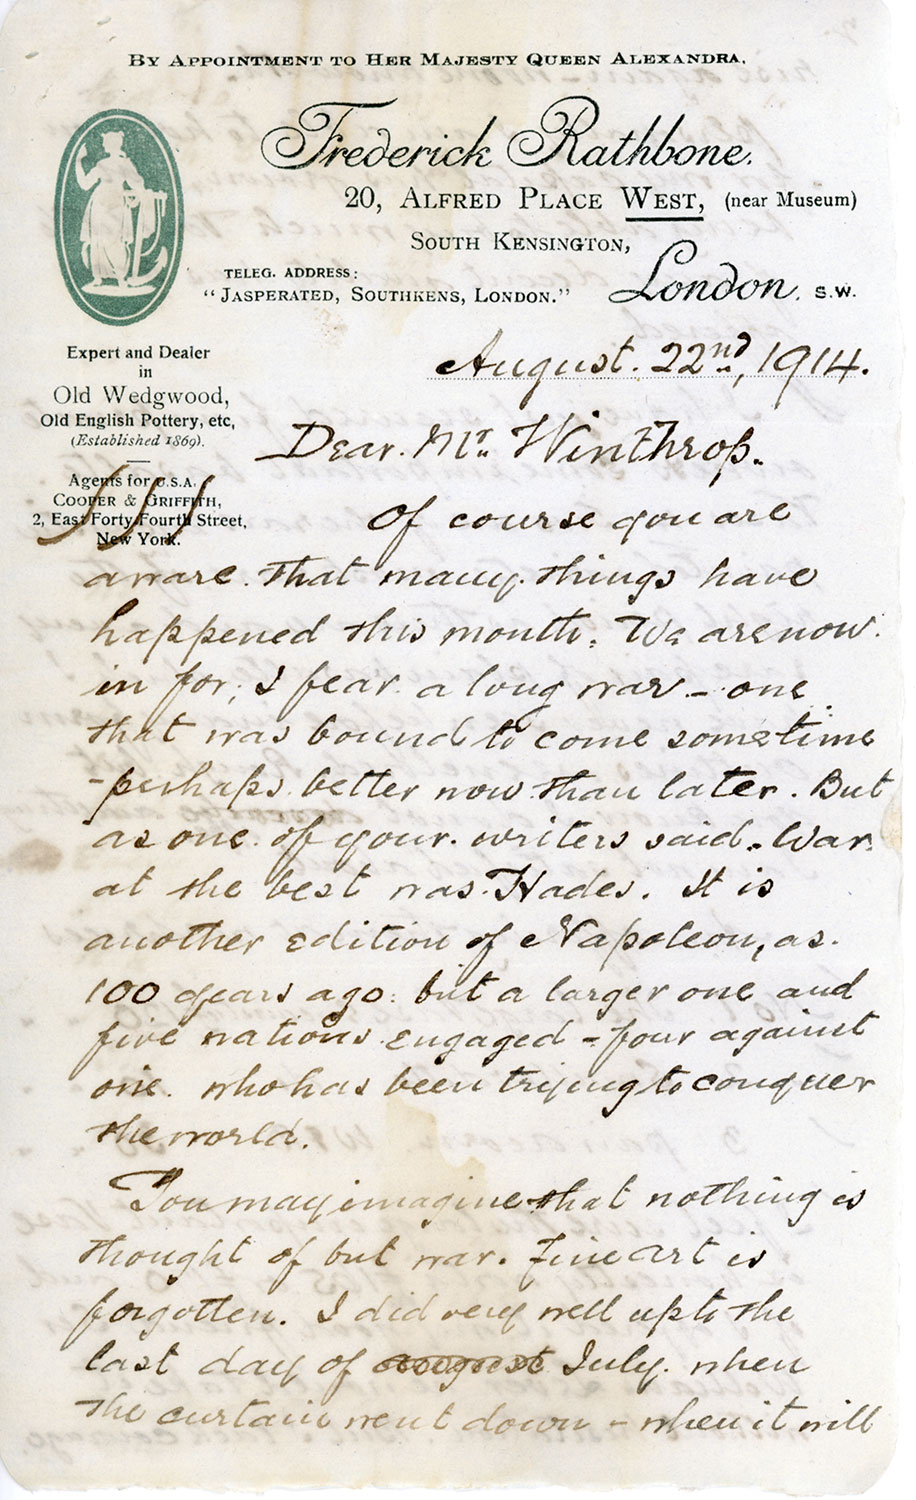 A handwritten letter, dated August 22, 1914, is addressed to Mr. Winthrop, with the letterhead of Frederick Rathbone at top.